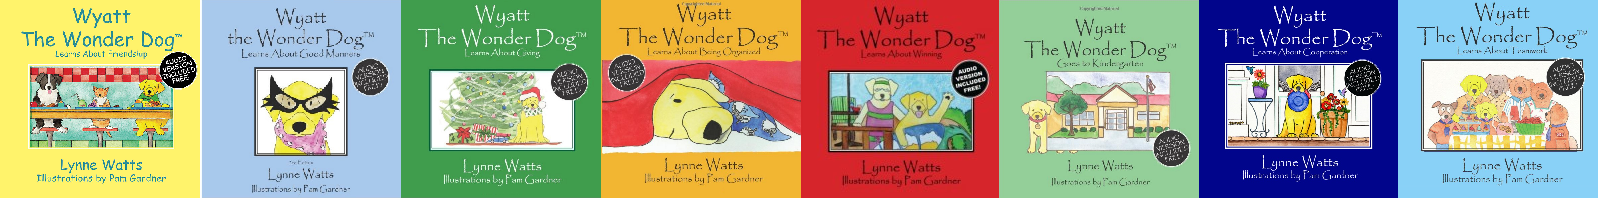 Wyatt the Wonder Dog books-x200